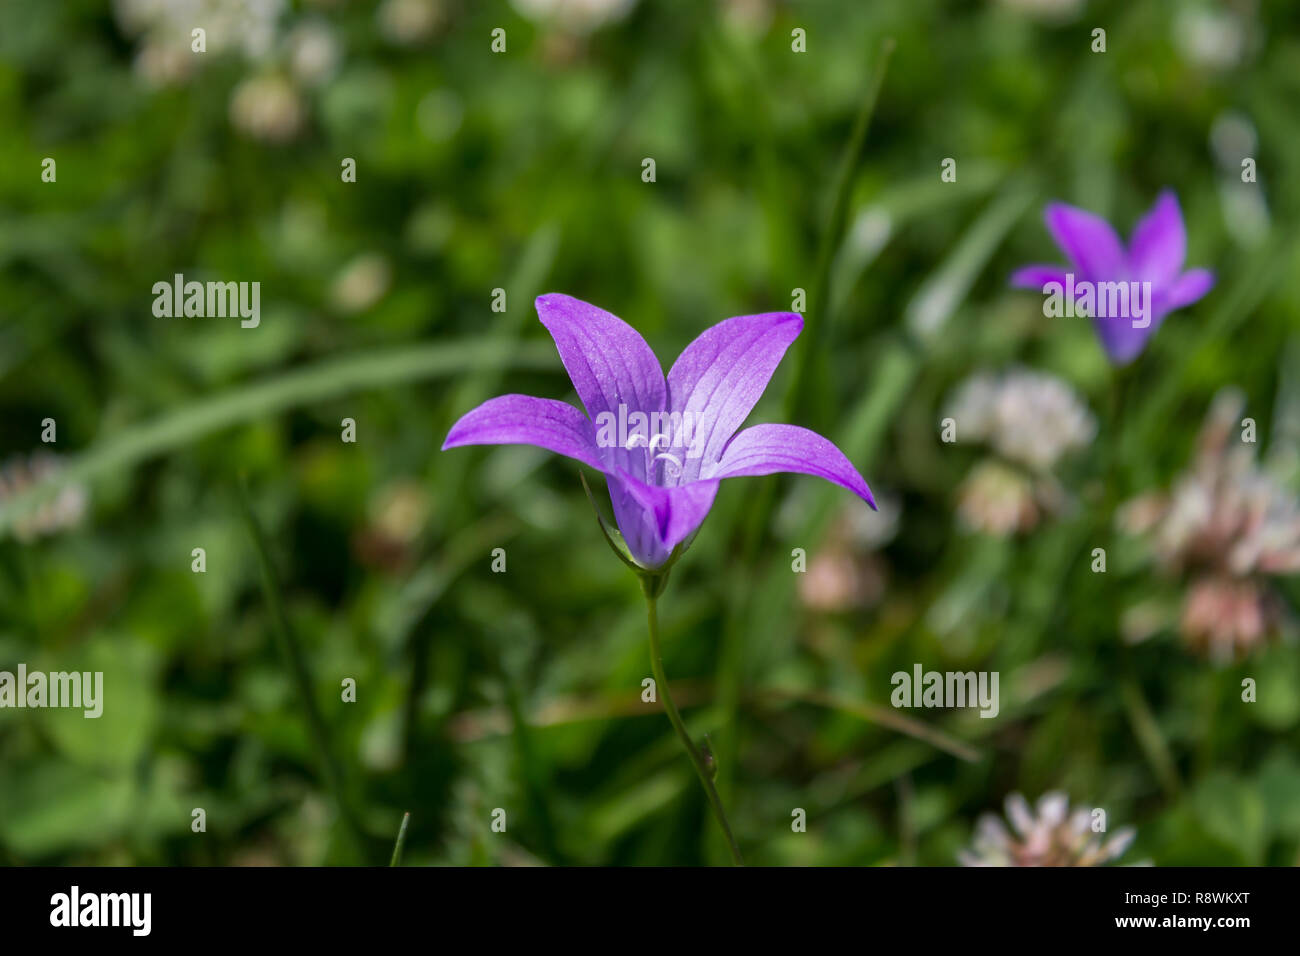 Wildflower with a blurred background - Stock Image